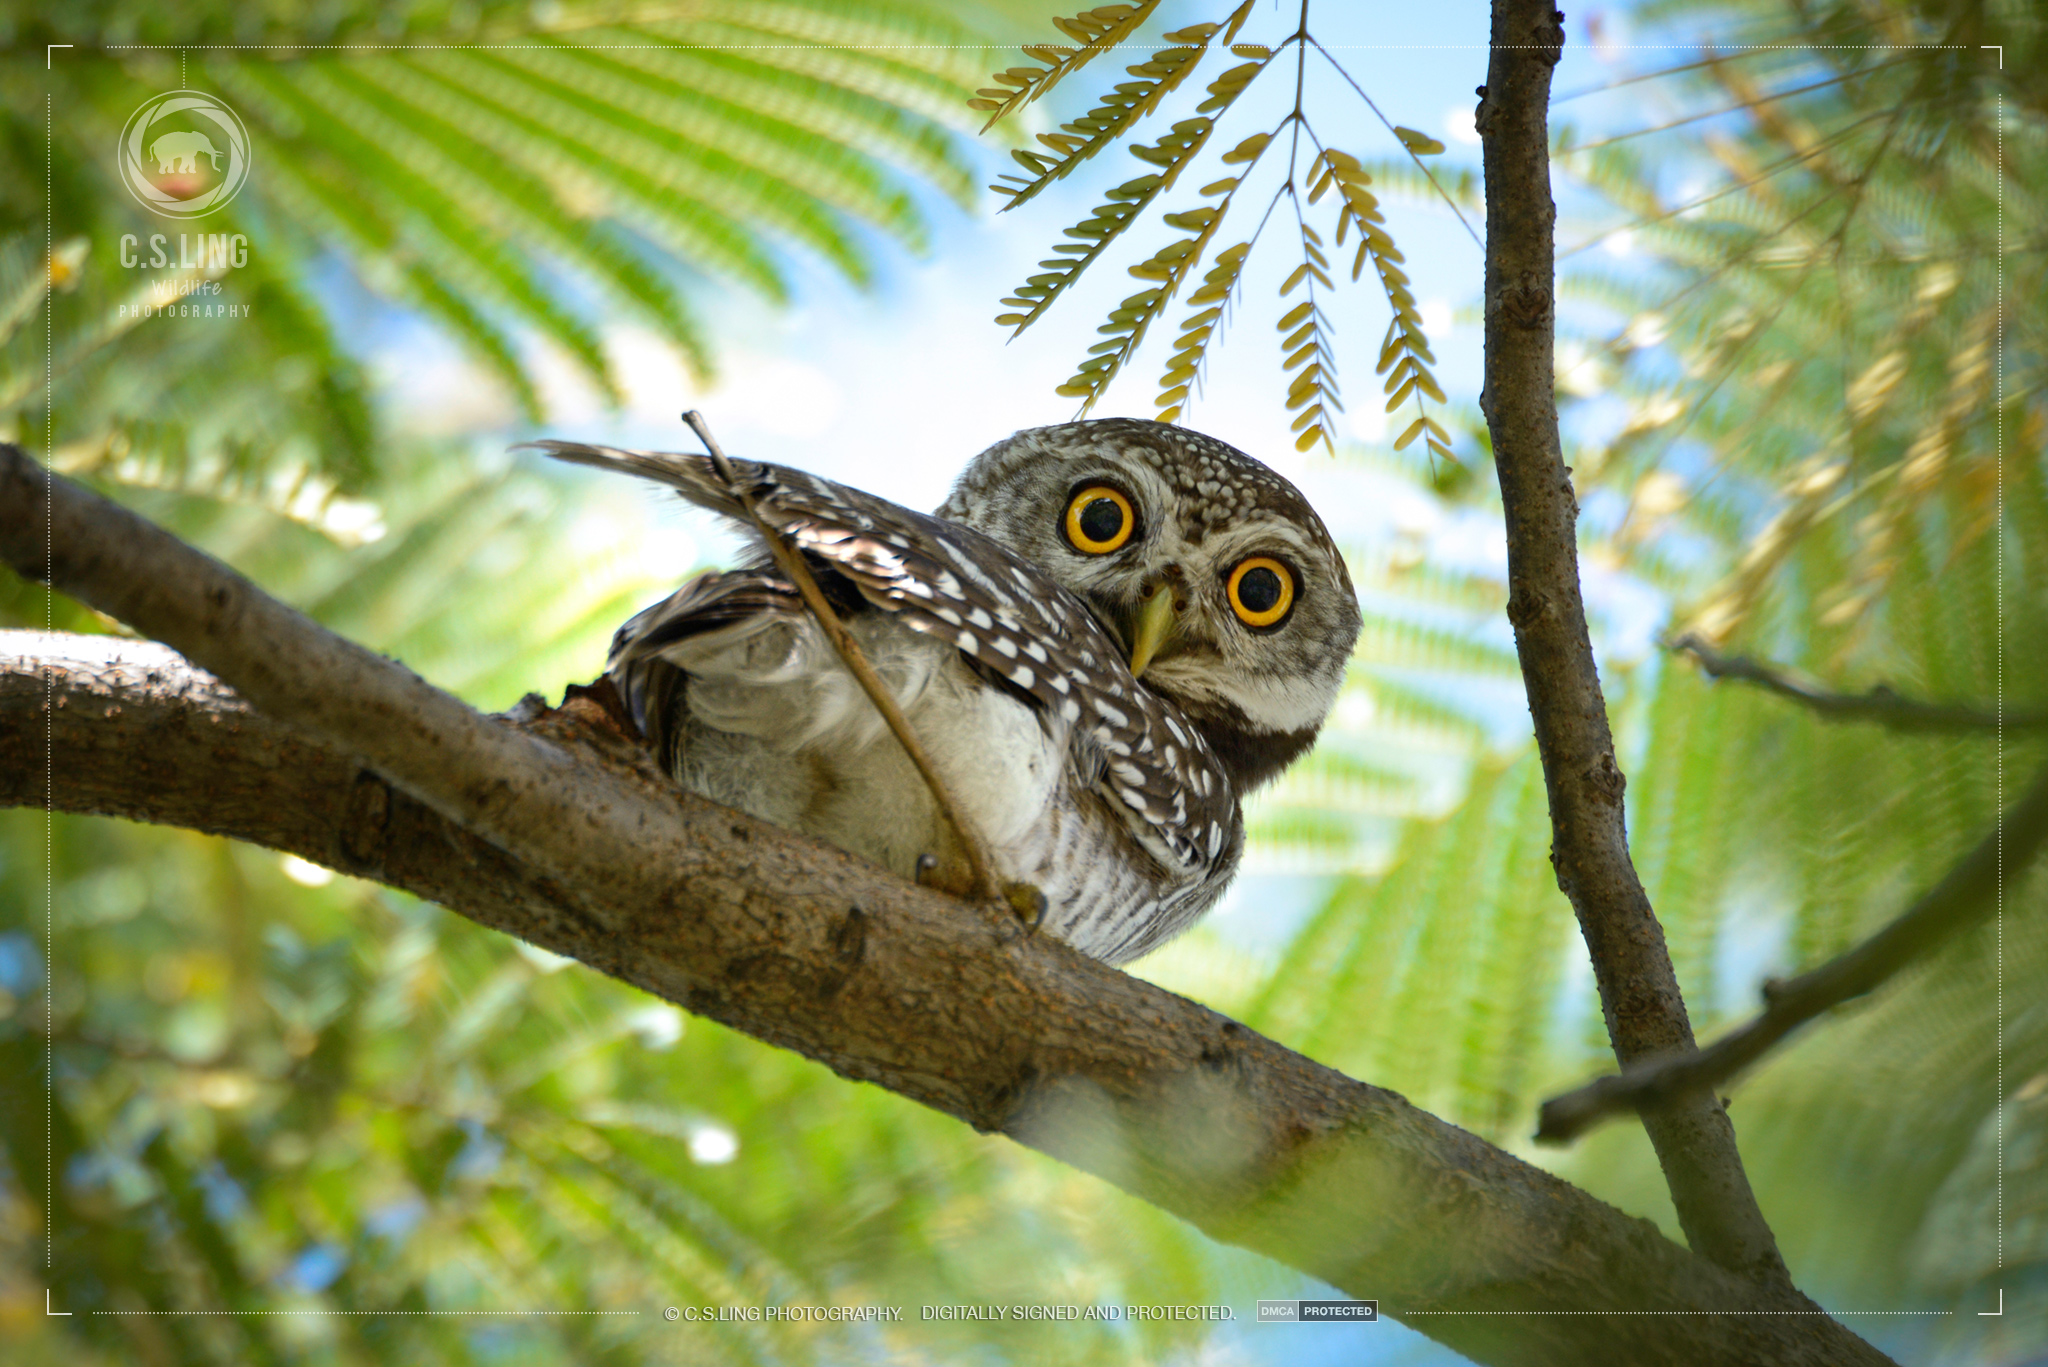 Spotted Owlet Thailand | Wildlife Photographer in Asia C.S.Ling